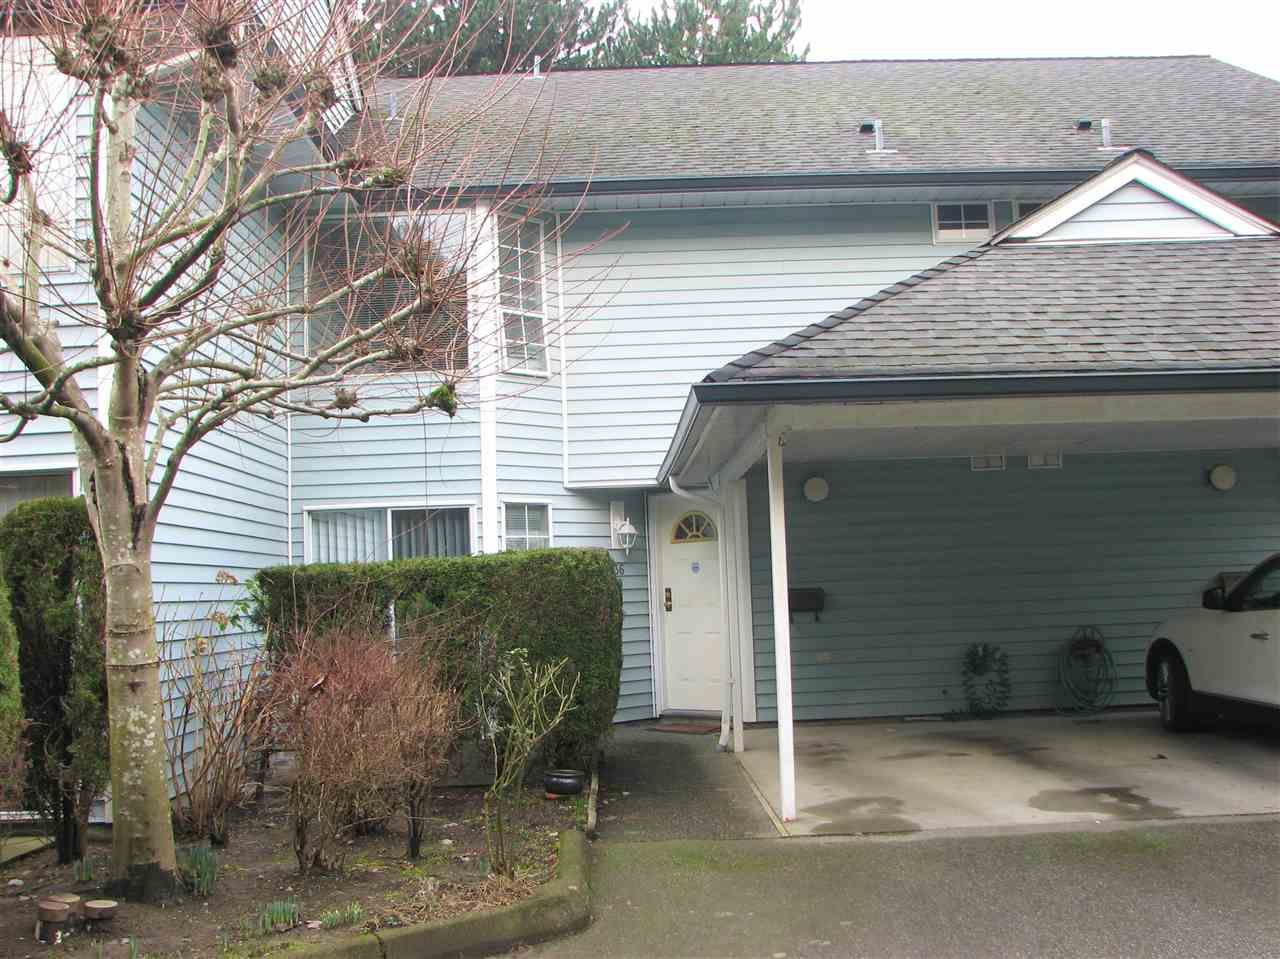 """Main Photo: 36 7360 MINORU Boulevard in Richmond: Brighouse South Townhouse for sale in """"RIDGECREST"""" : MLS®# R2534221"""